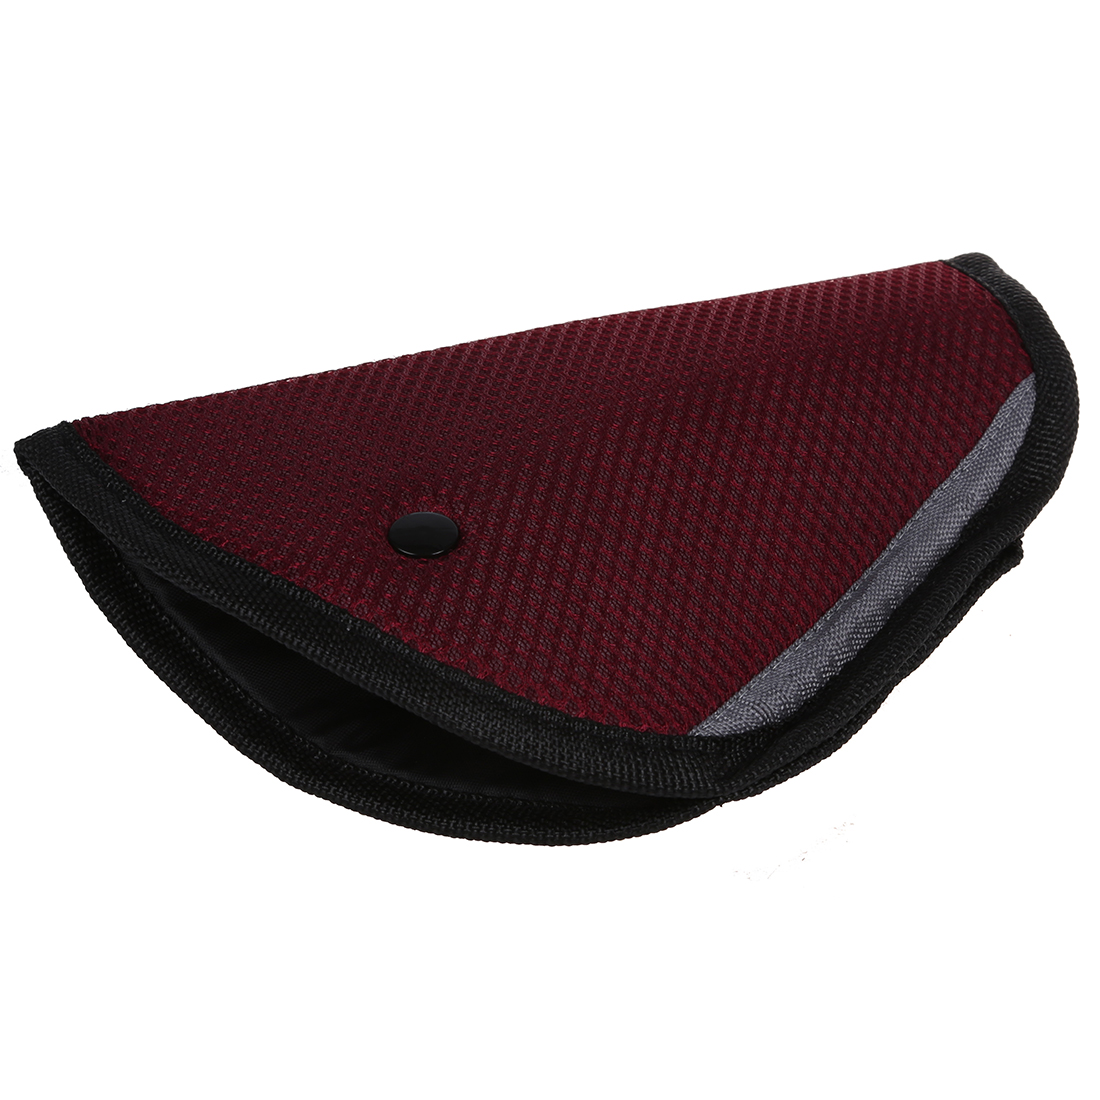 Car Accessories Comfortable Child Car Seat Belt Holder Claret-in Seat Belts & Padding from